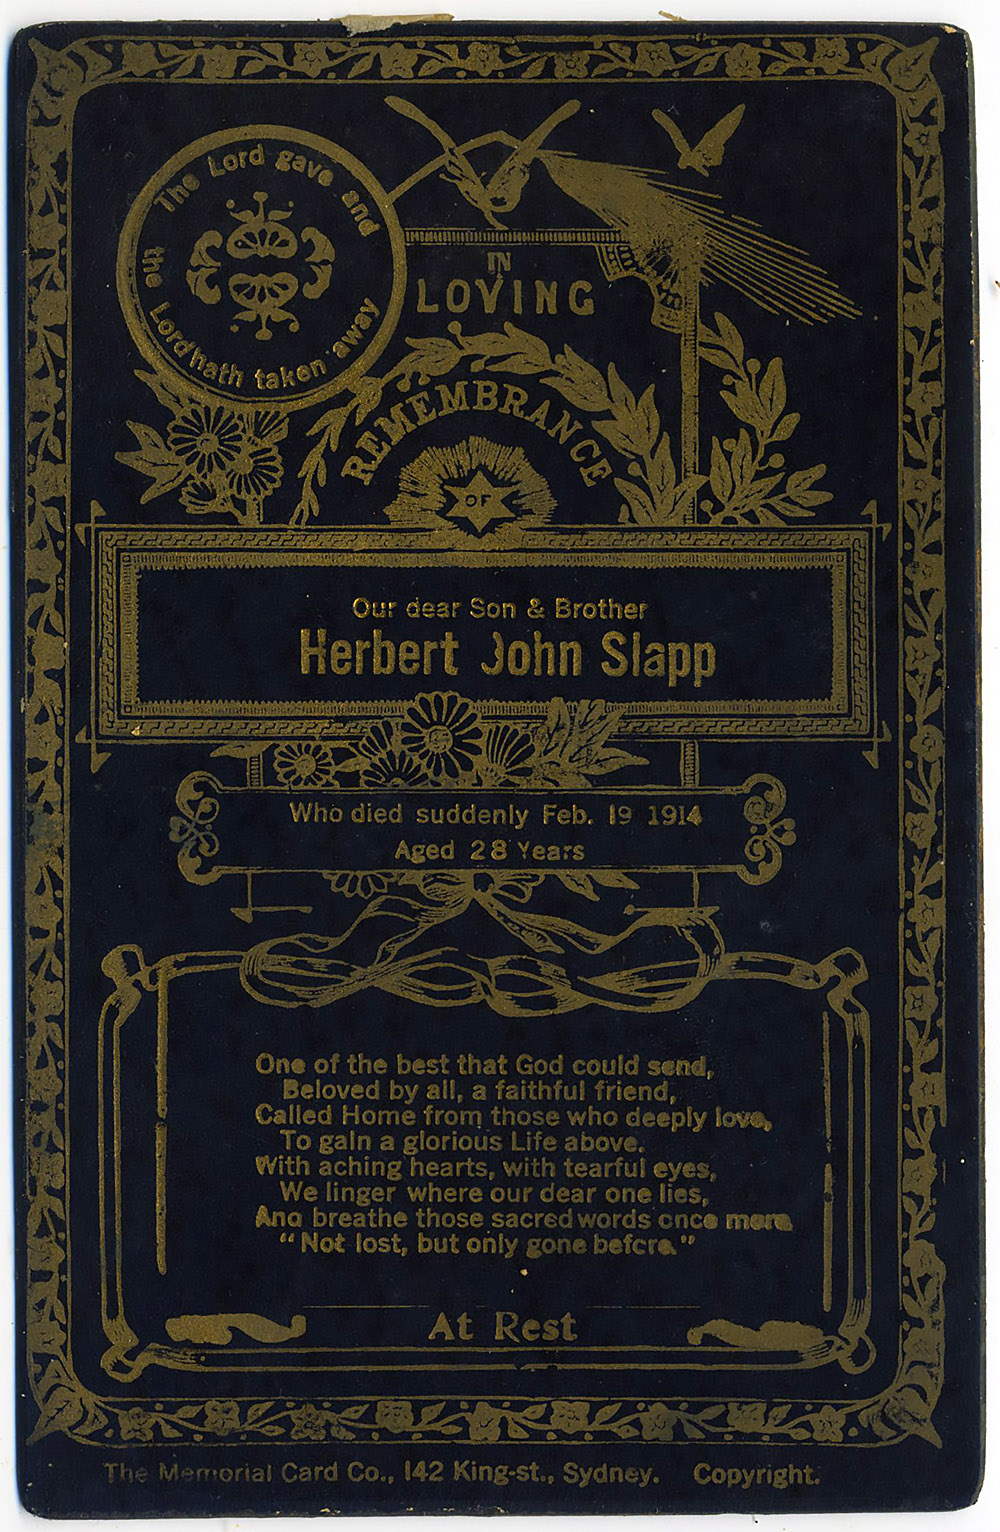 Herbert John Slapp Memorial Card